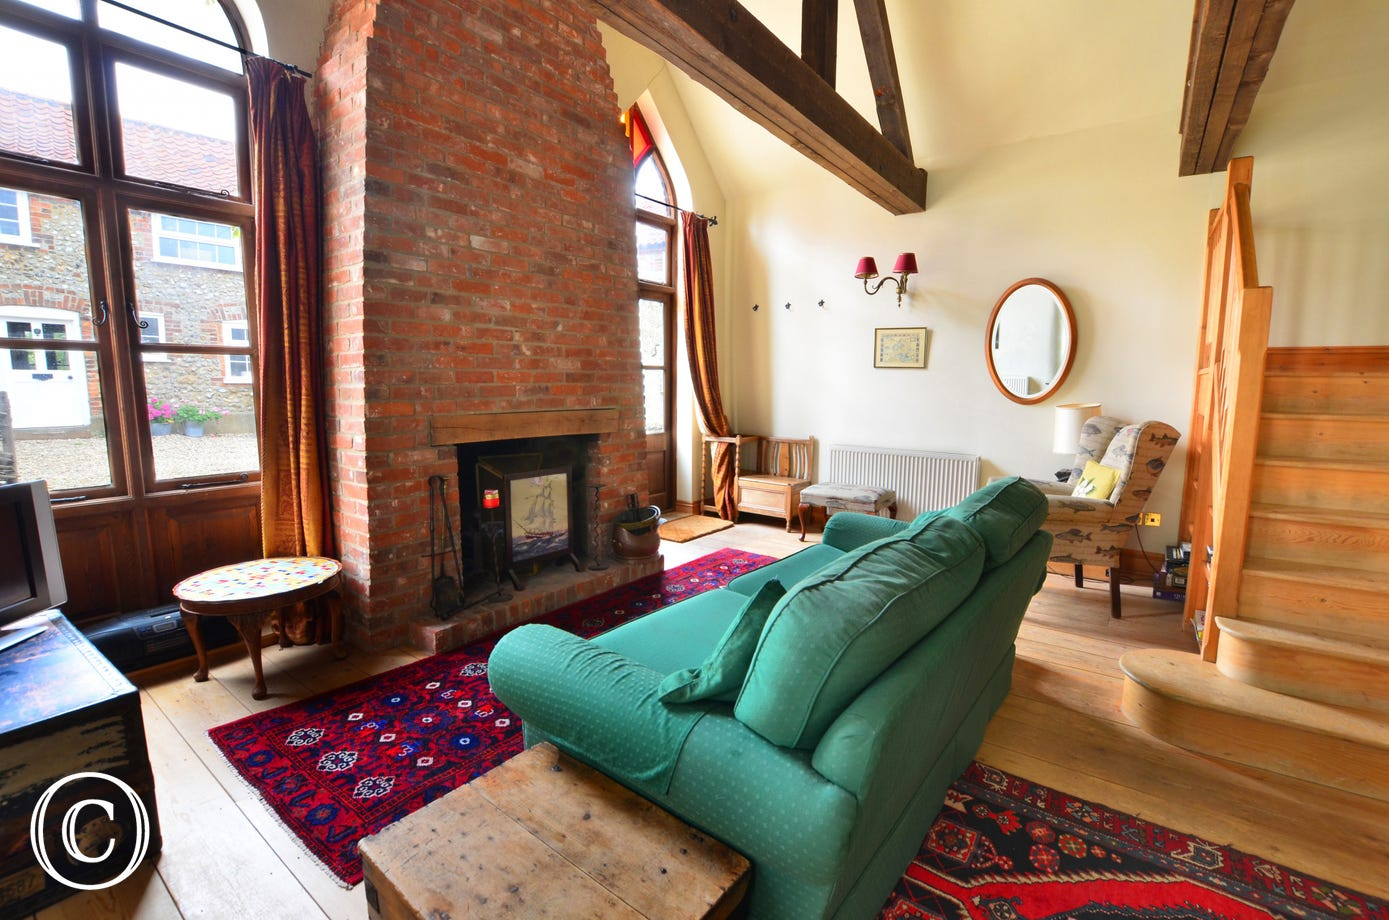 Characterful sitting room with an inglenook fireplace as a feature for cosy evenings